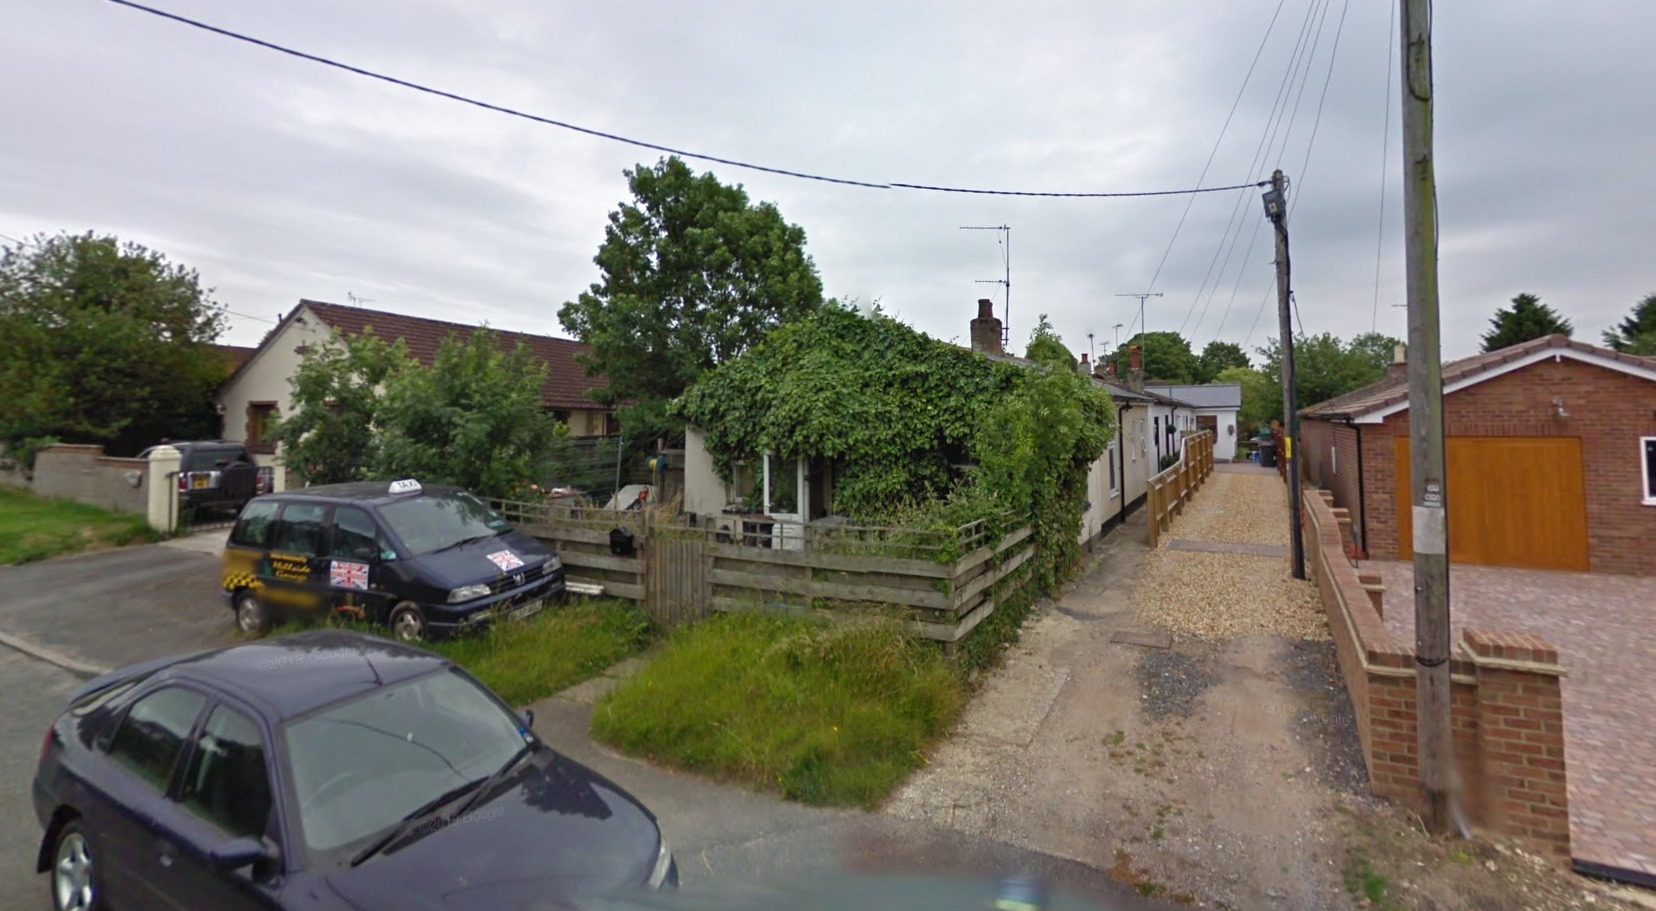 Shipton Bellinger holiday let plans refused by council